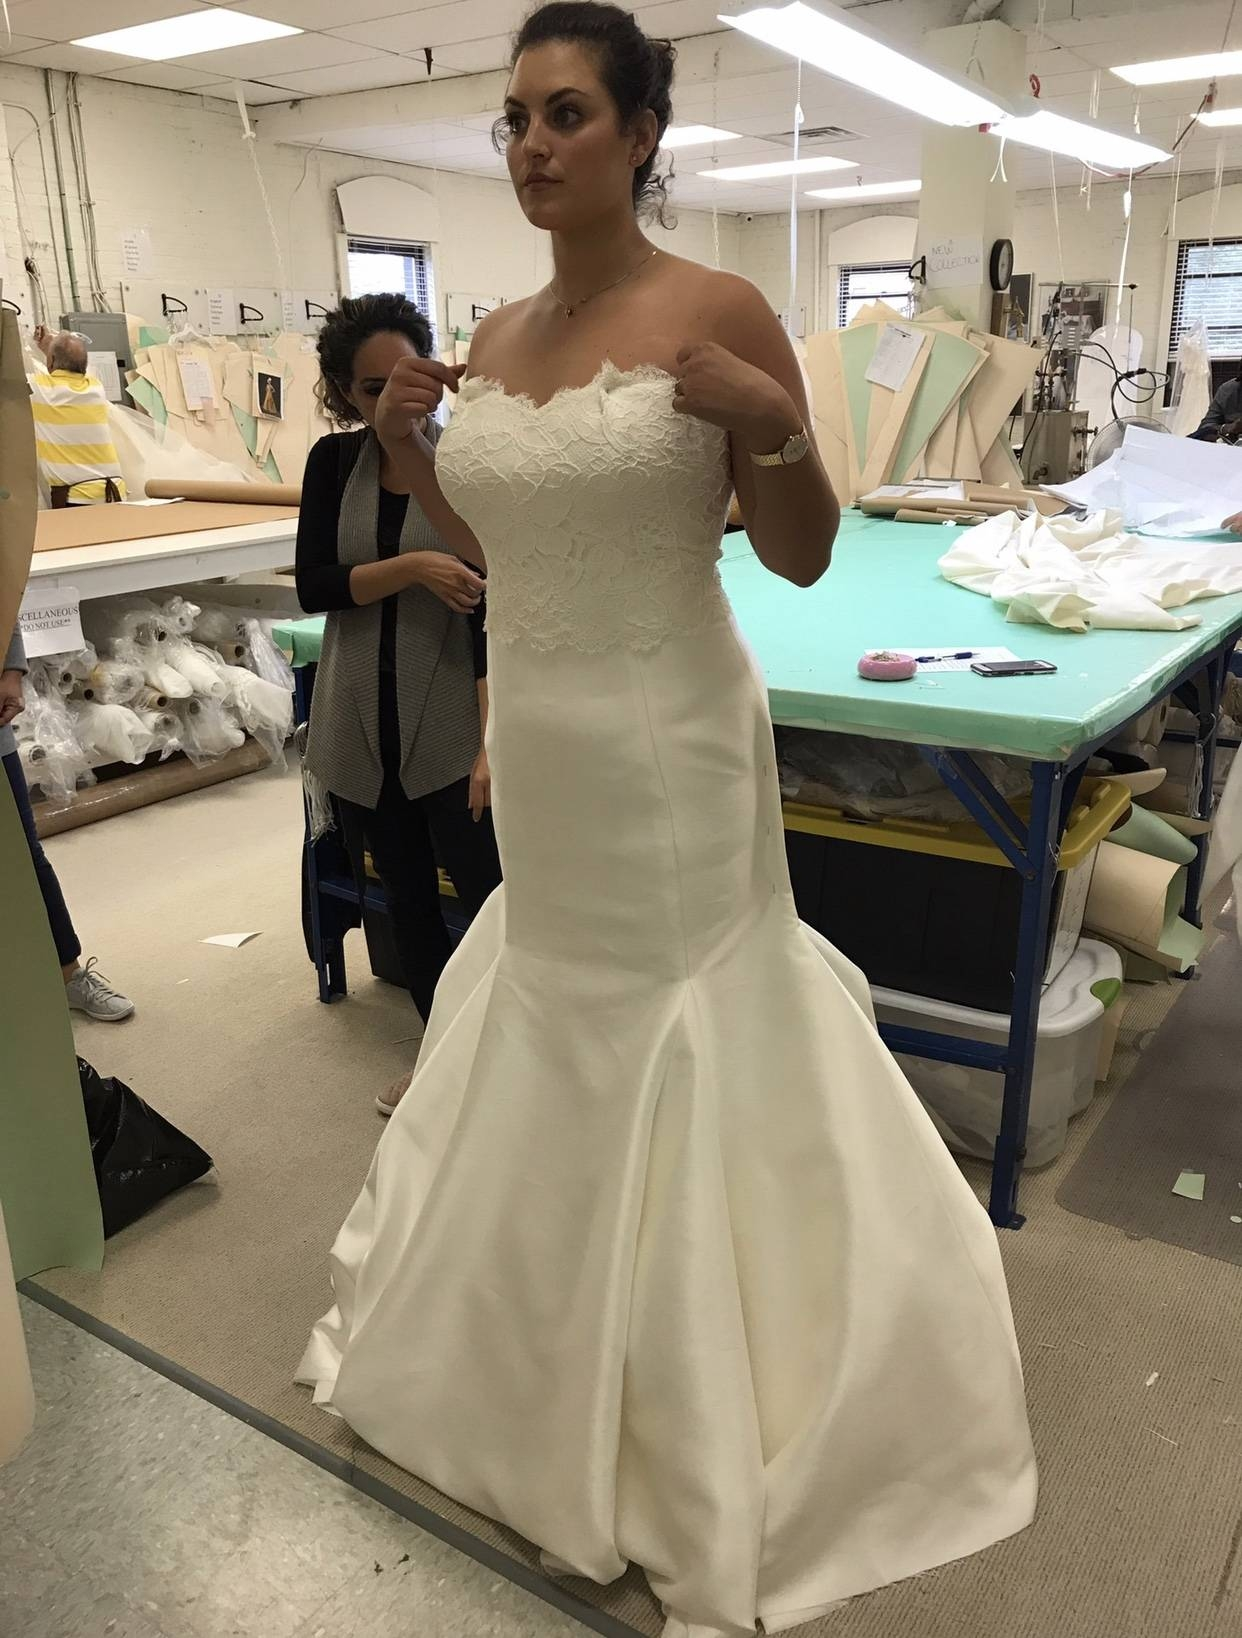 5046ac2d2502 When I arrived at the studio two days later, I had my dream dress. It was  incredible. Sarah not only made me a custom wedding dress in 2 weeks, ...